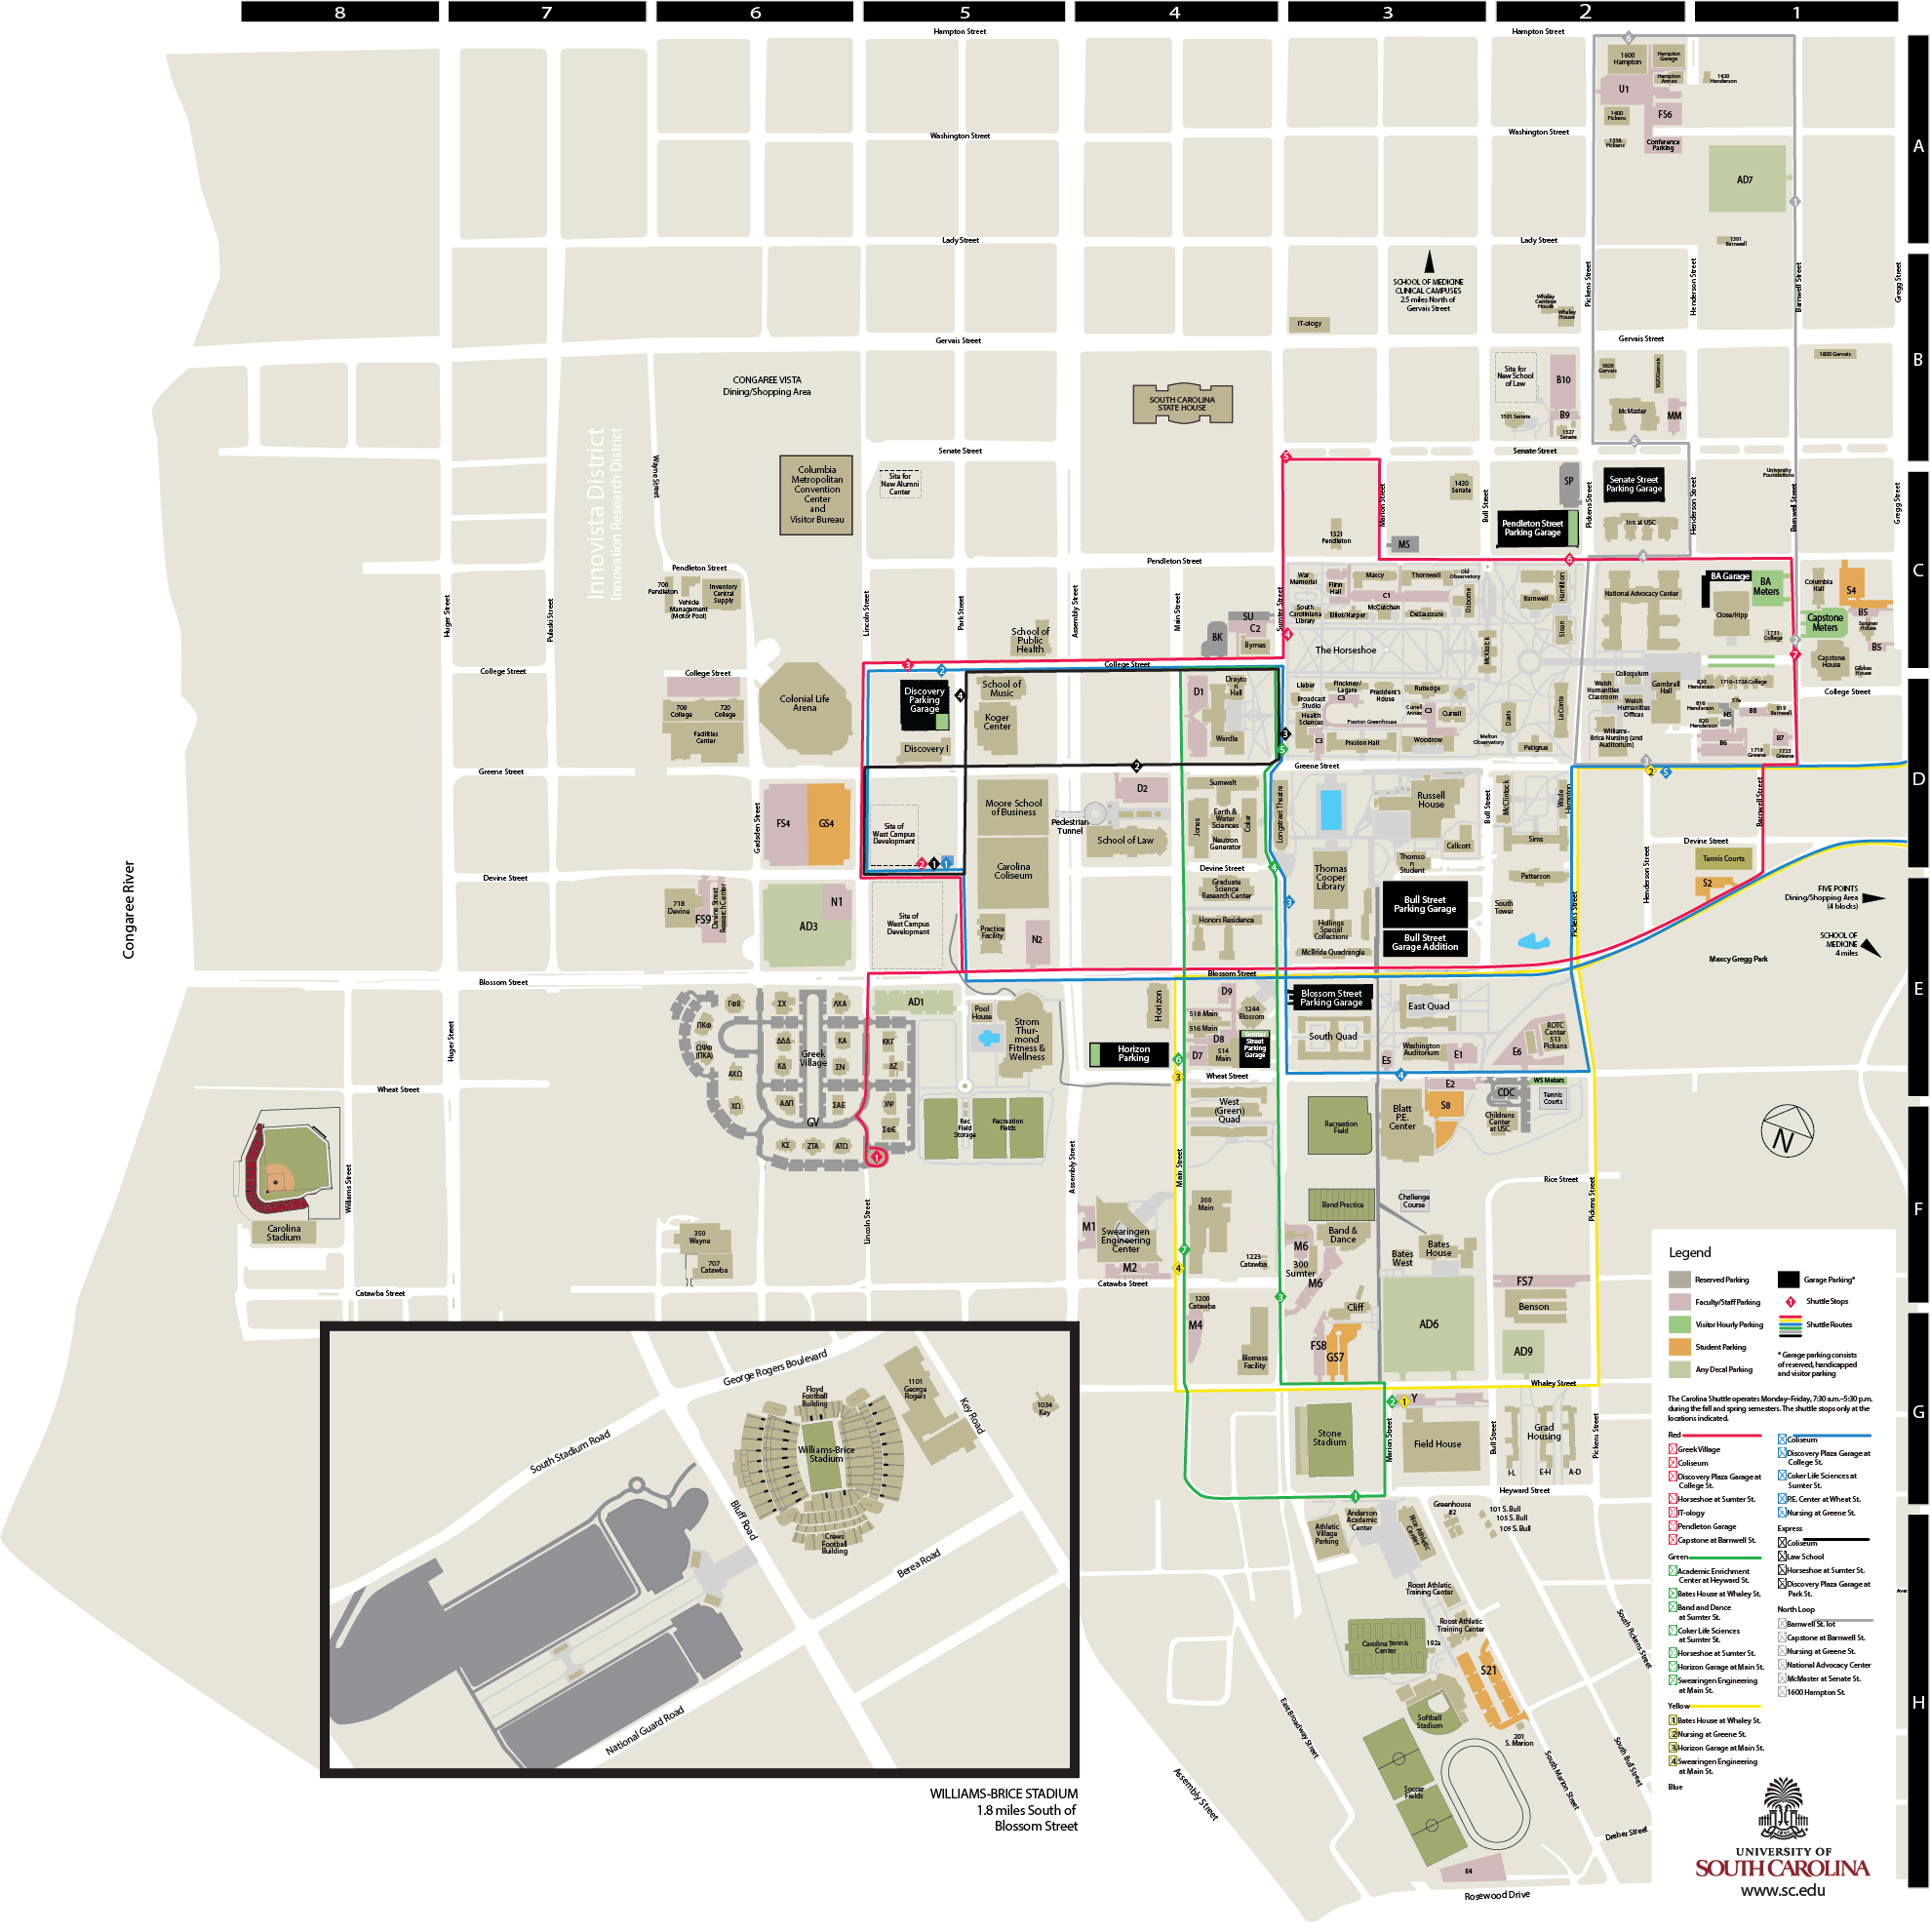 University of South Carolina Campus Map South Carolina Campus Map'